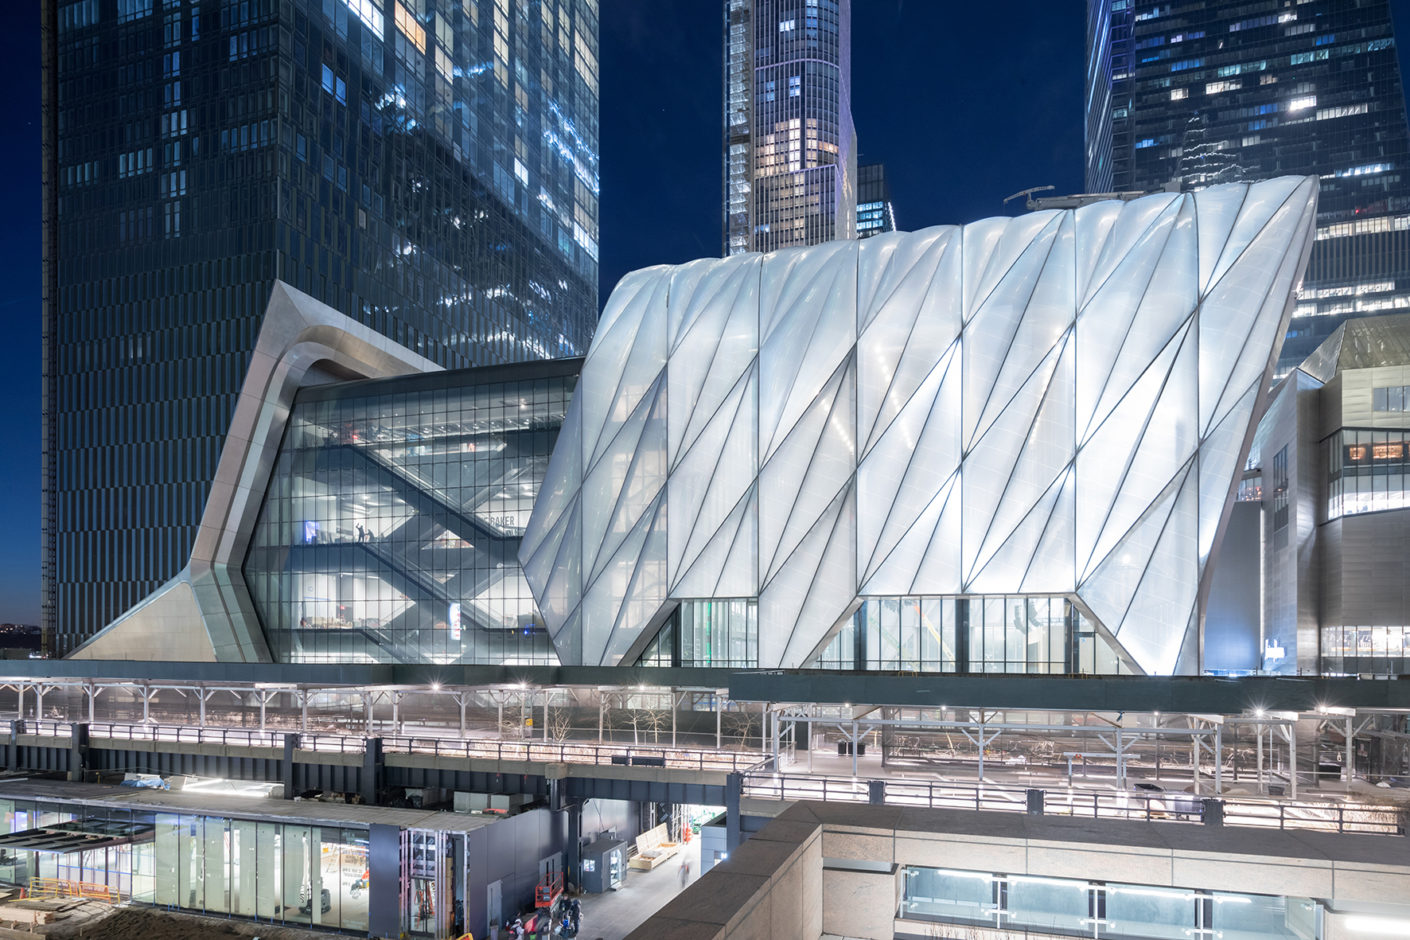 """The cultural centre """"The Shed"""" forms the heart of the Hudson Yards development area in Midtown Manhattan."""